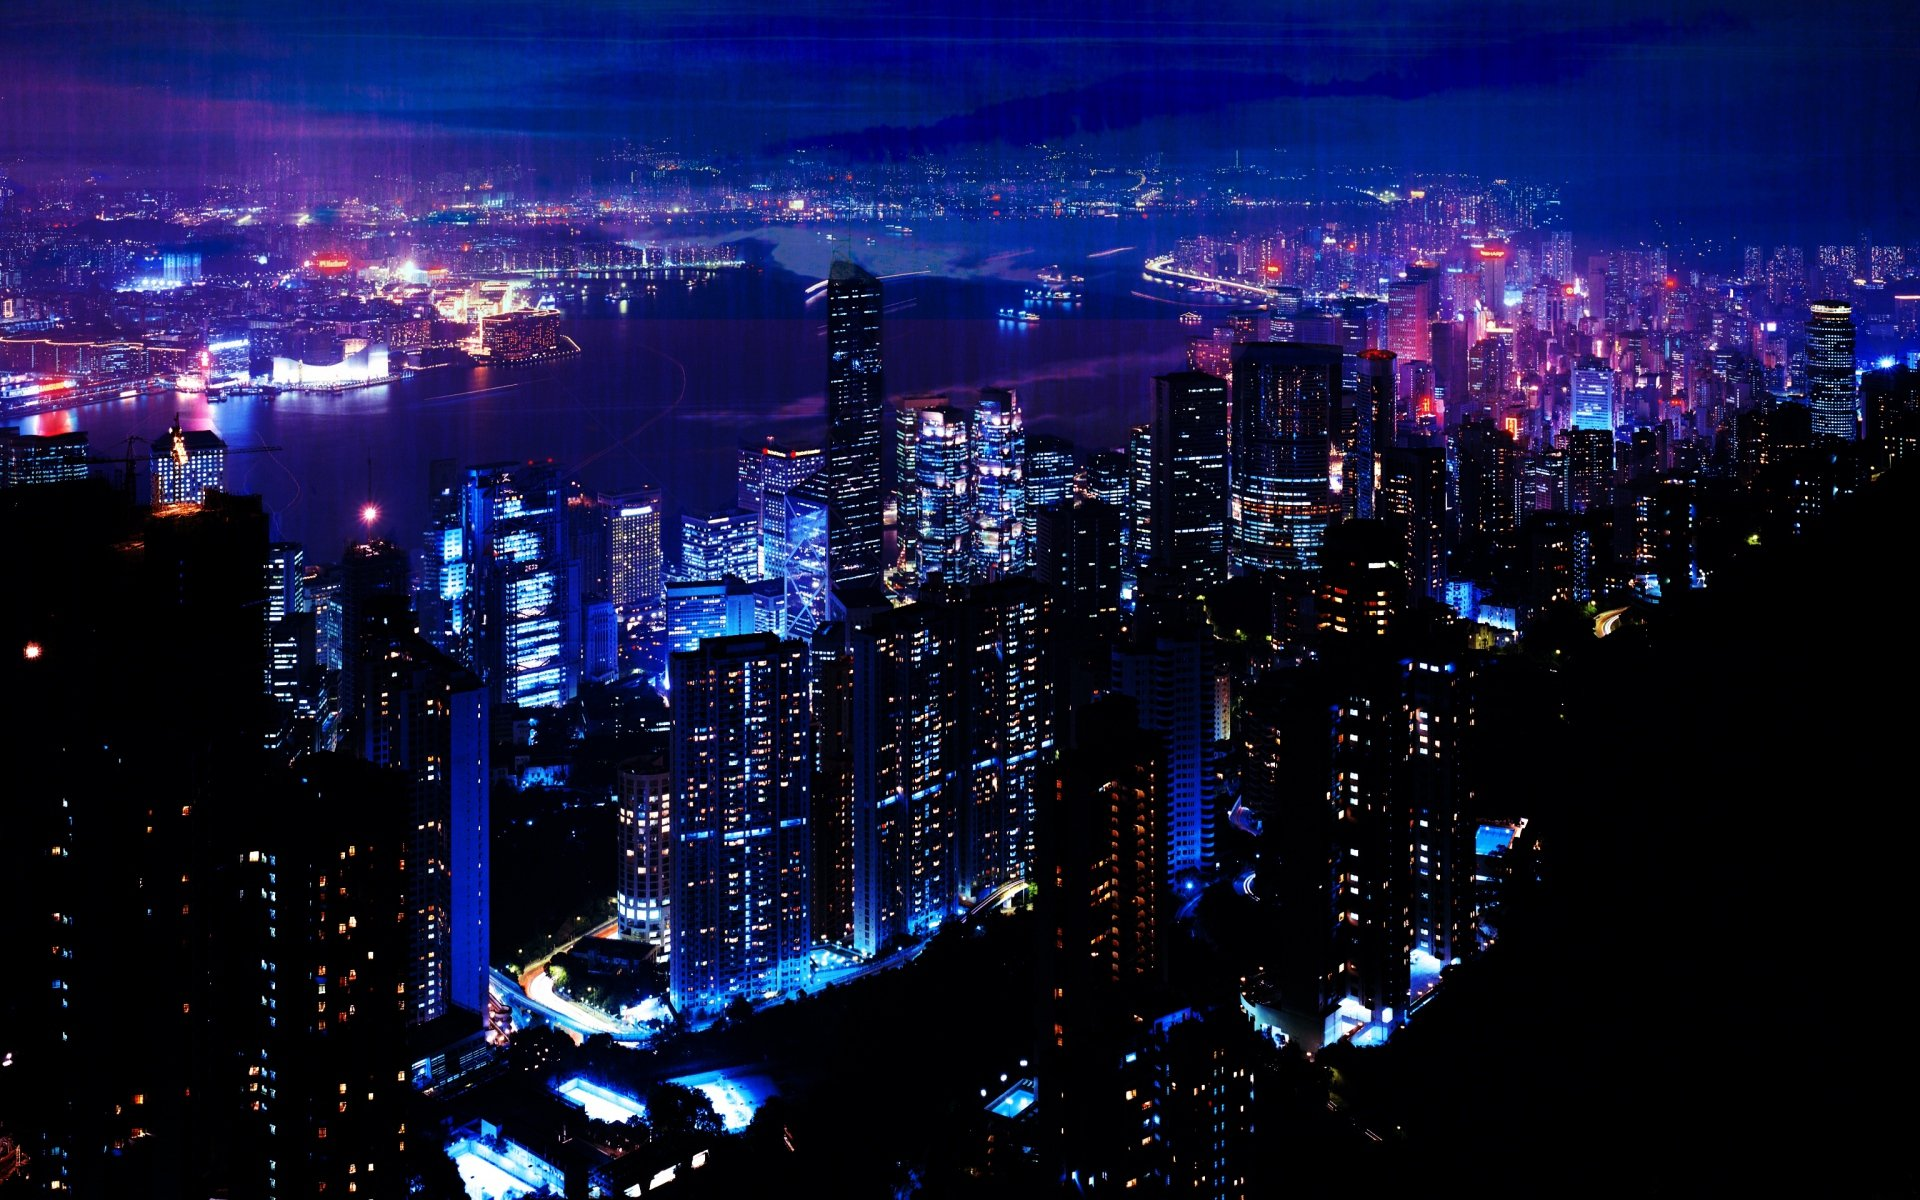 Glow Night City Wallpaper Background 551244 5497 Wallpaper Cool 1920x1200